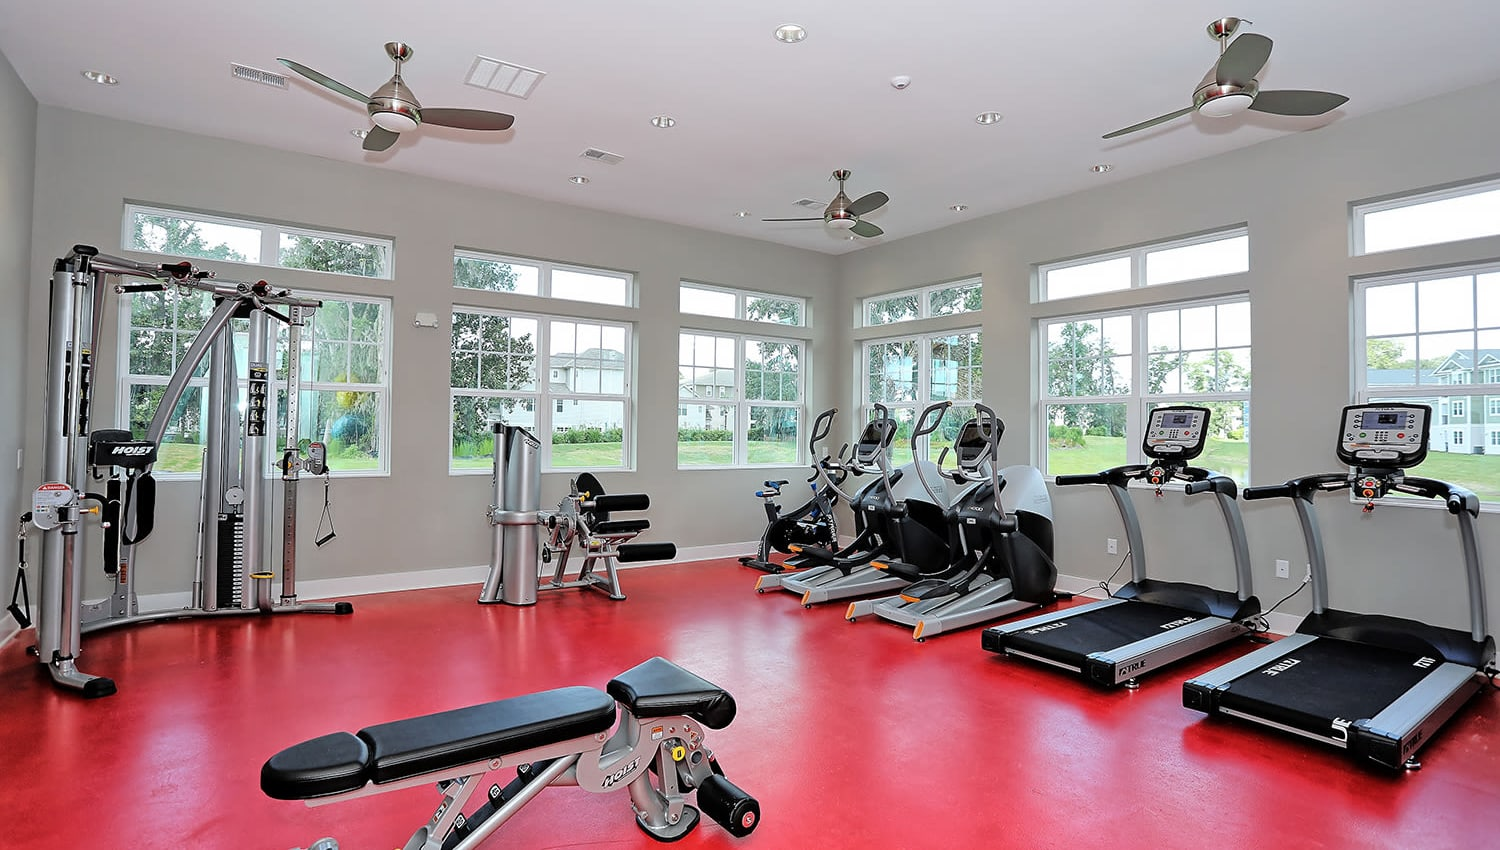 Treadmills and exercise machines in the fitness center at The Slate in Savannah, Georgia